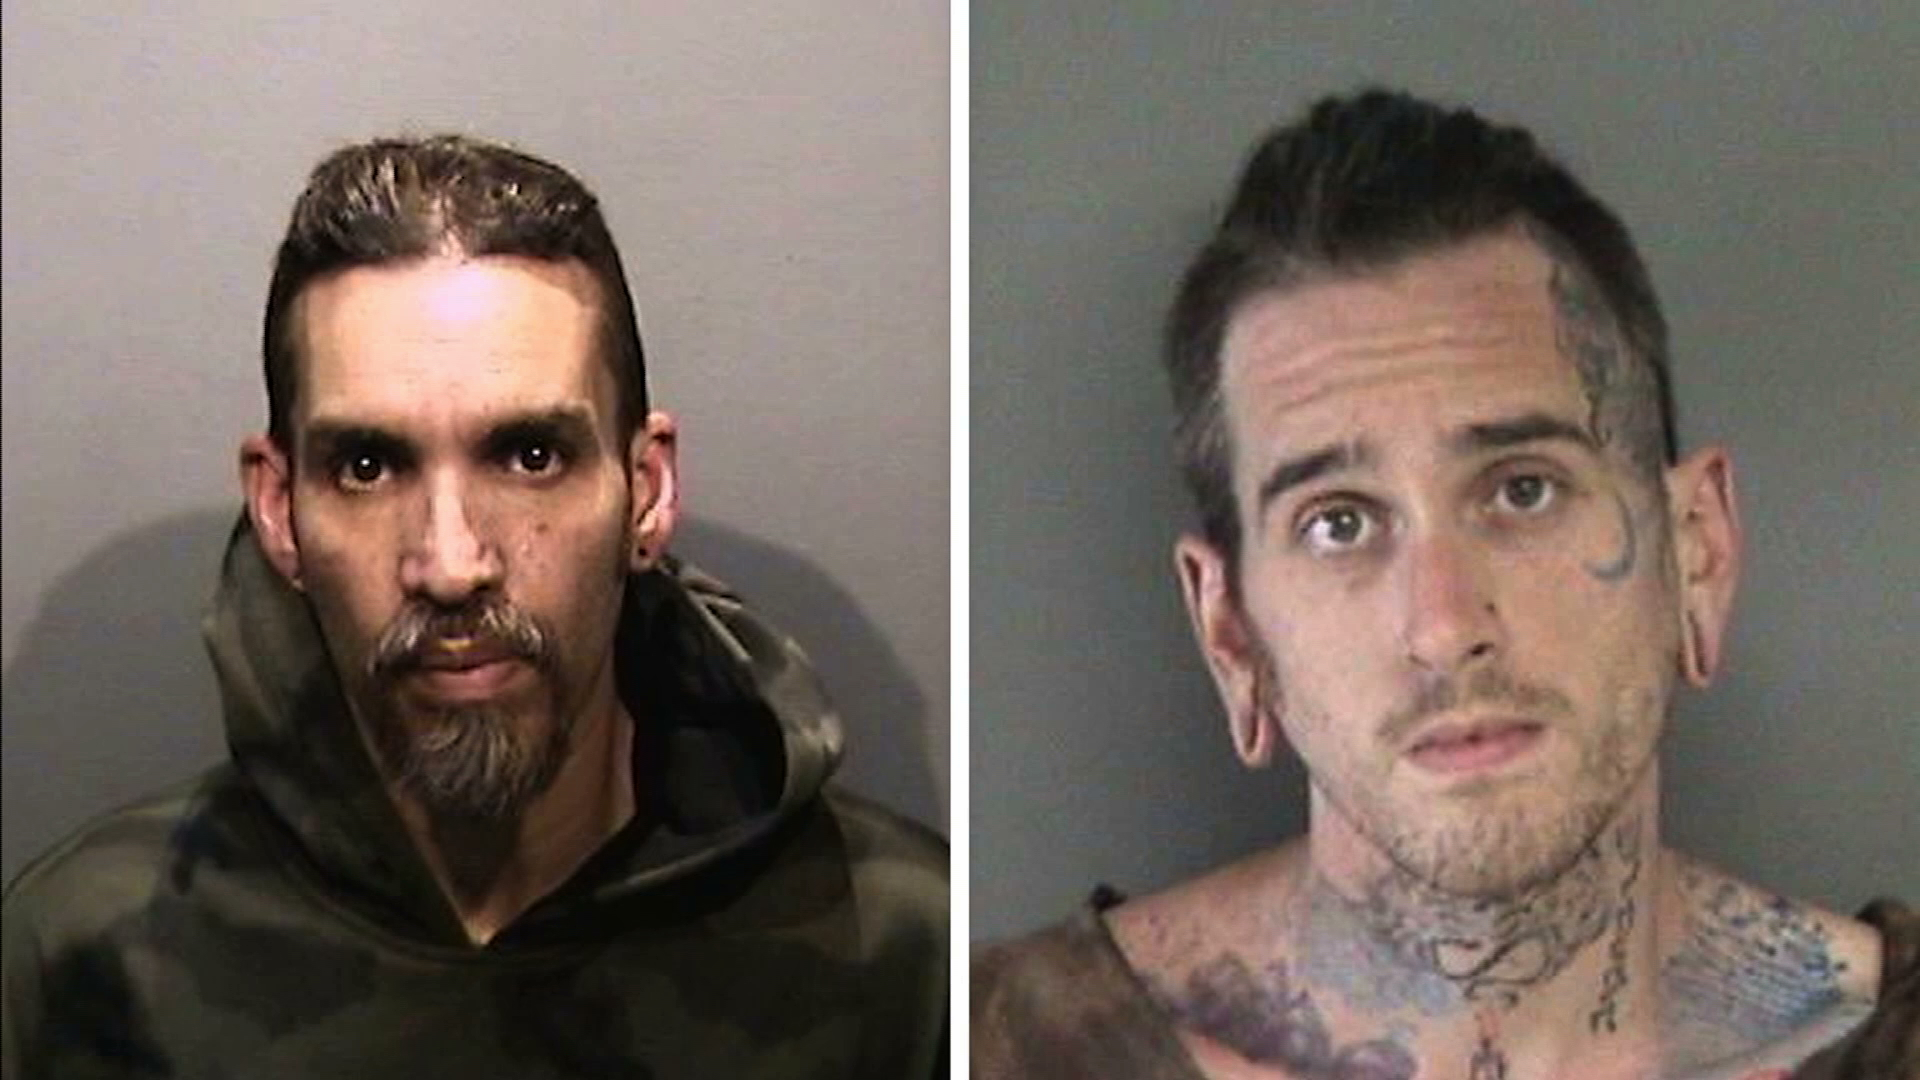 Derick Almena, left, and Max Harris are seen in 2017 booking photos released by the Alameda County Sheriff's Office. (Credit: KGO via CNN)